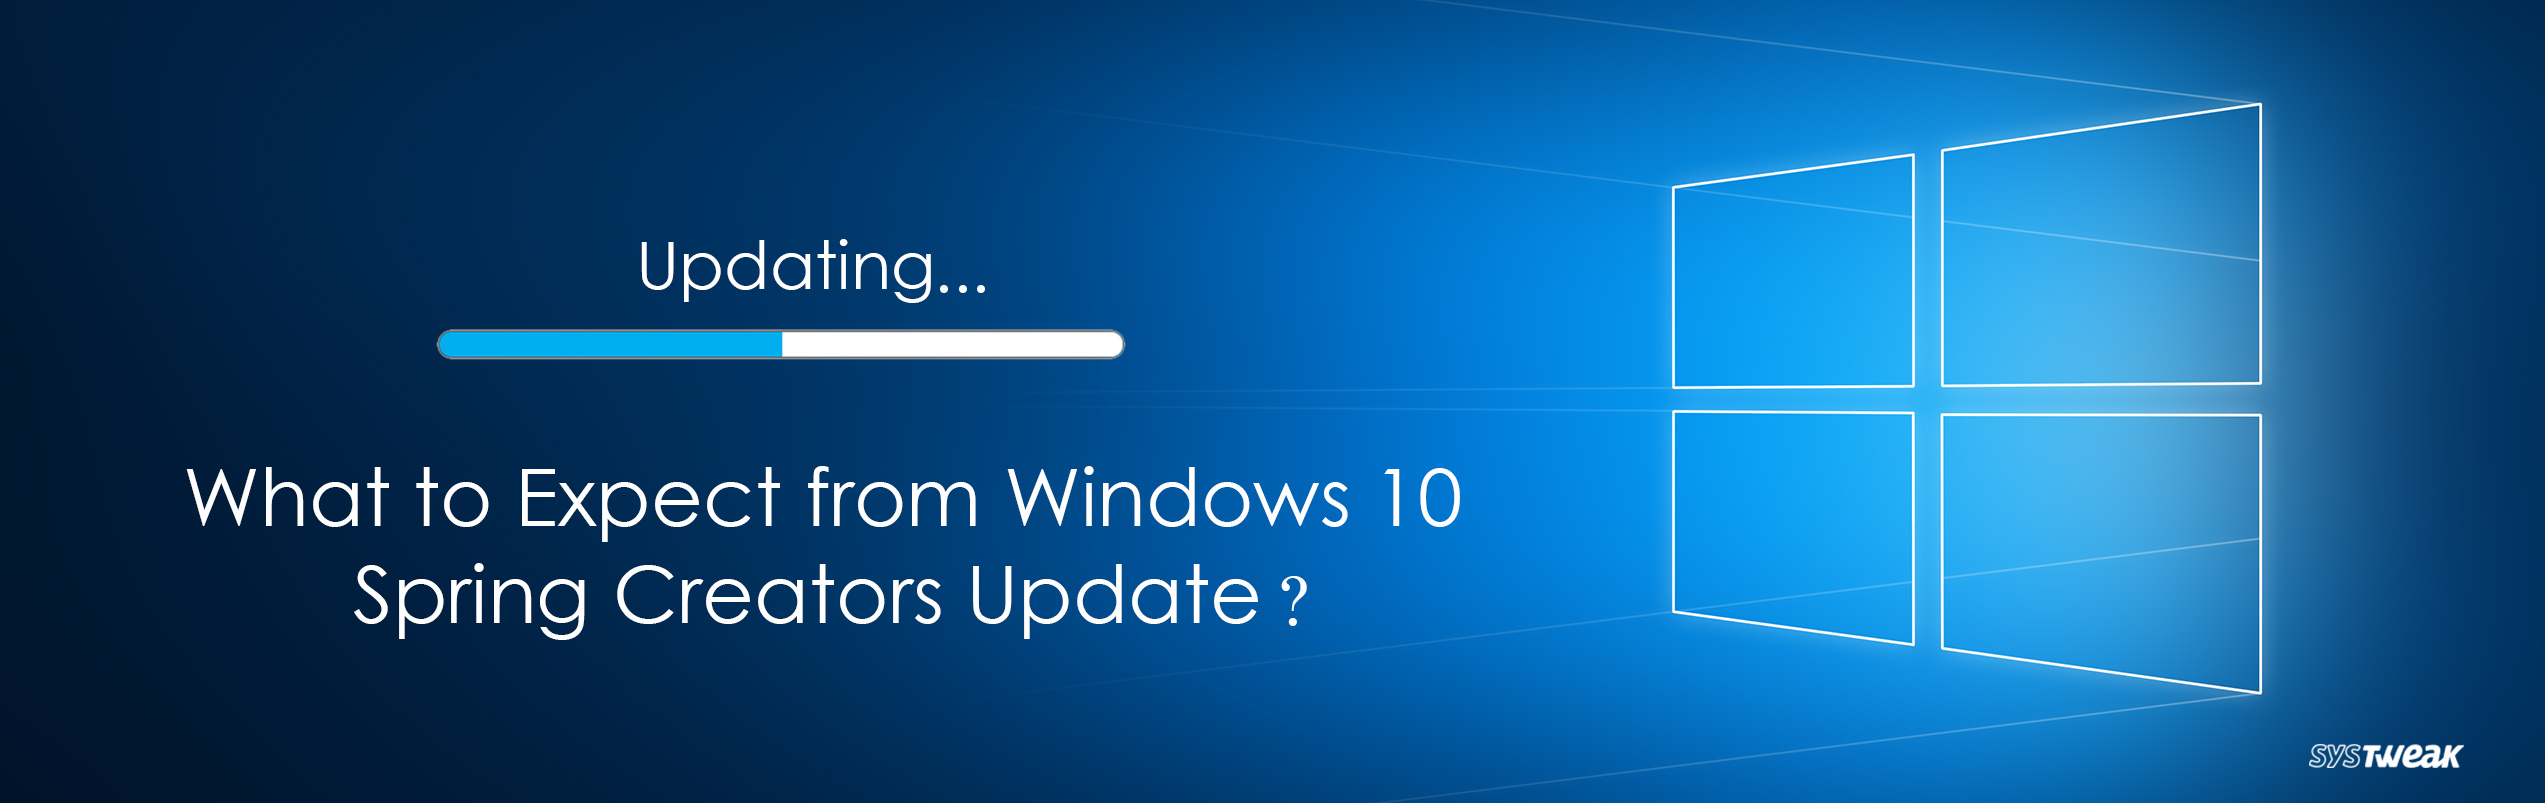 6 Useful Features Offered by Windows 10 Spring Creators Update